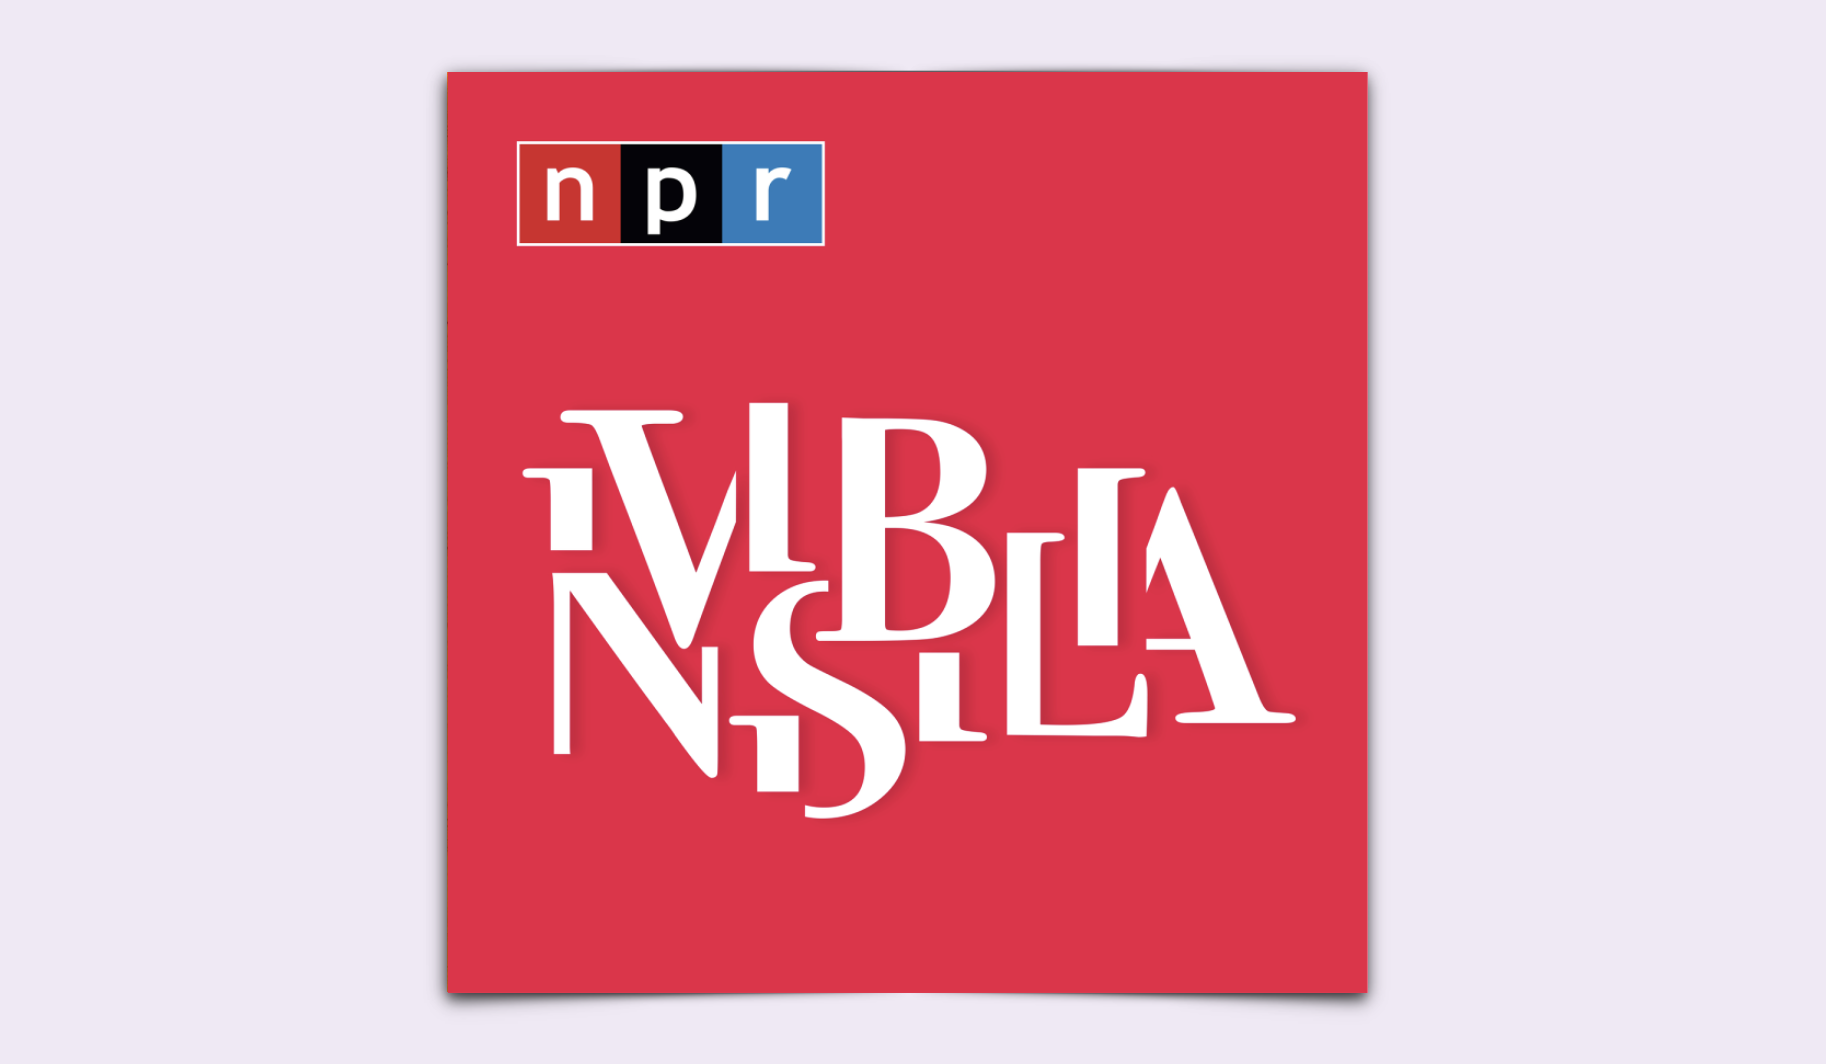 NPR Invisibilia Episodes